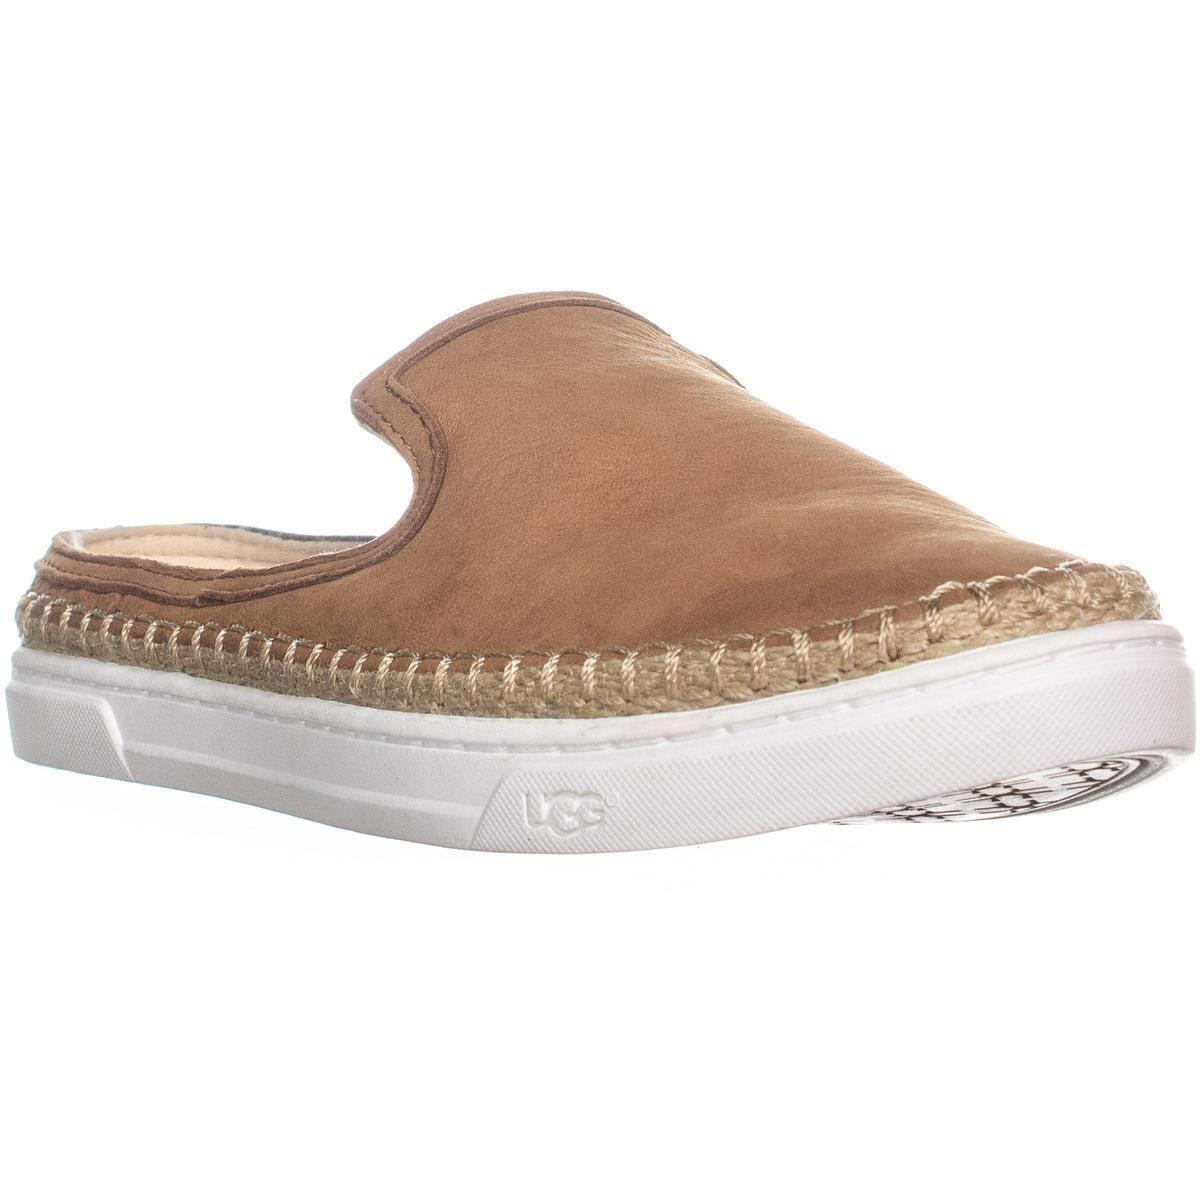 3232c5c3688 Lyst - UGG Caleel Flat Slip-on Mule in Brown